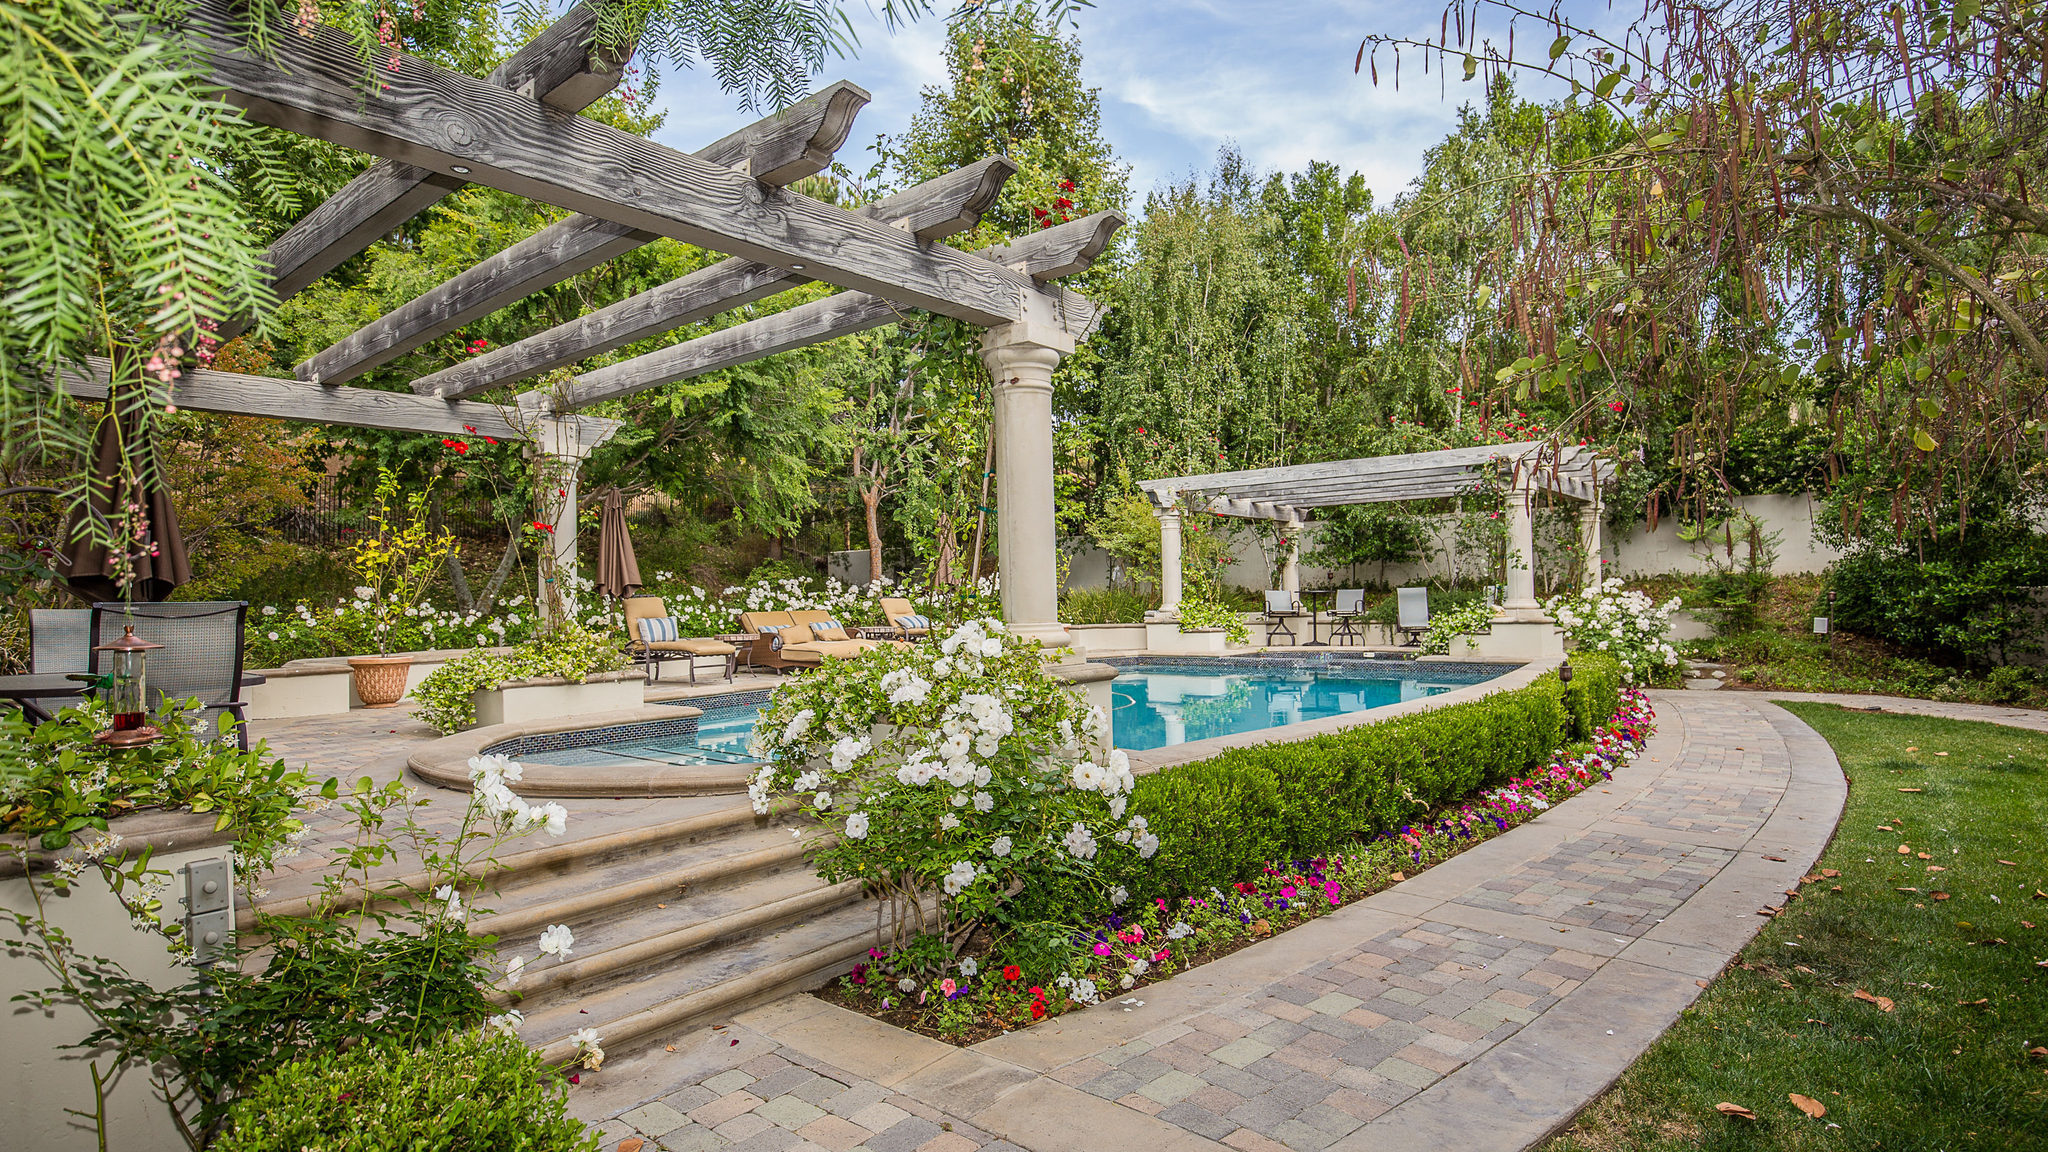 Caitlyn Jenners onetime home in Calabasas is for sale LA Times